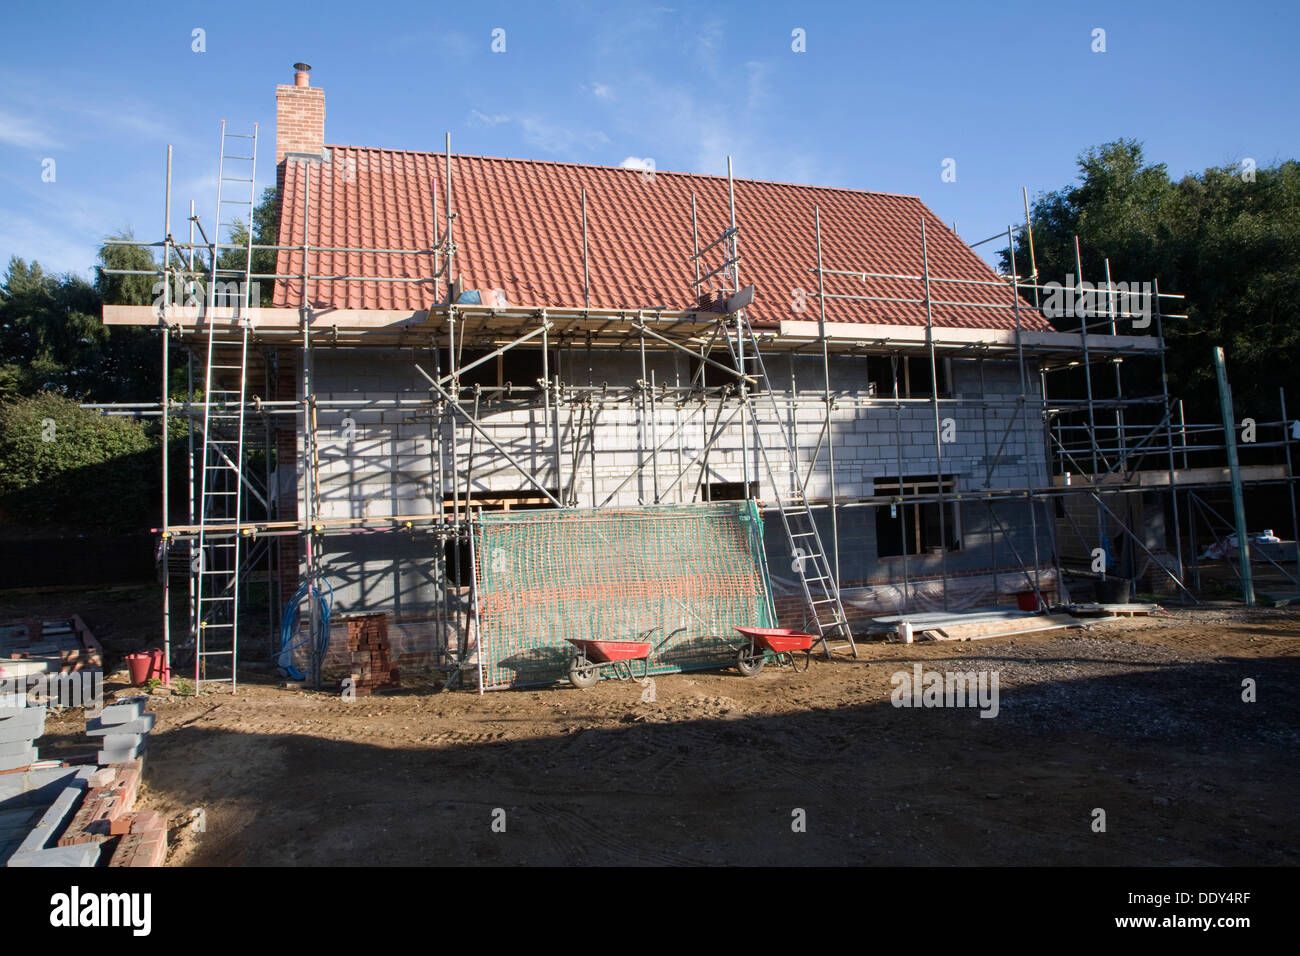 Scaffolding around new detached house building site - Stock Image